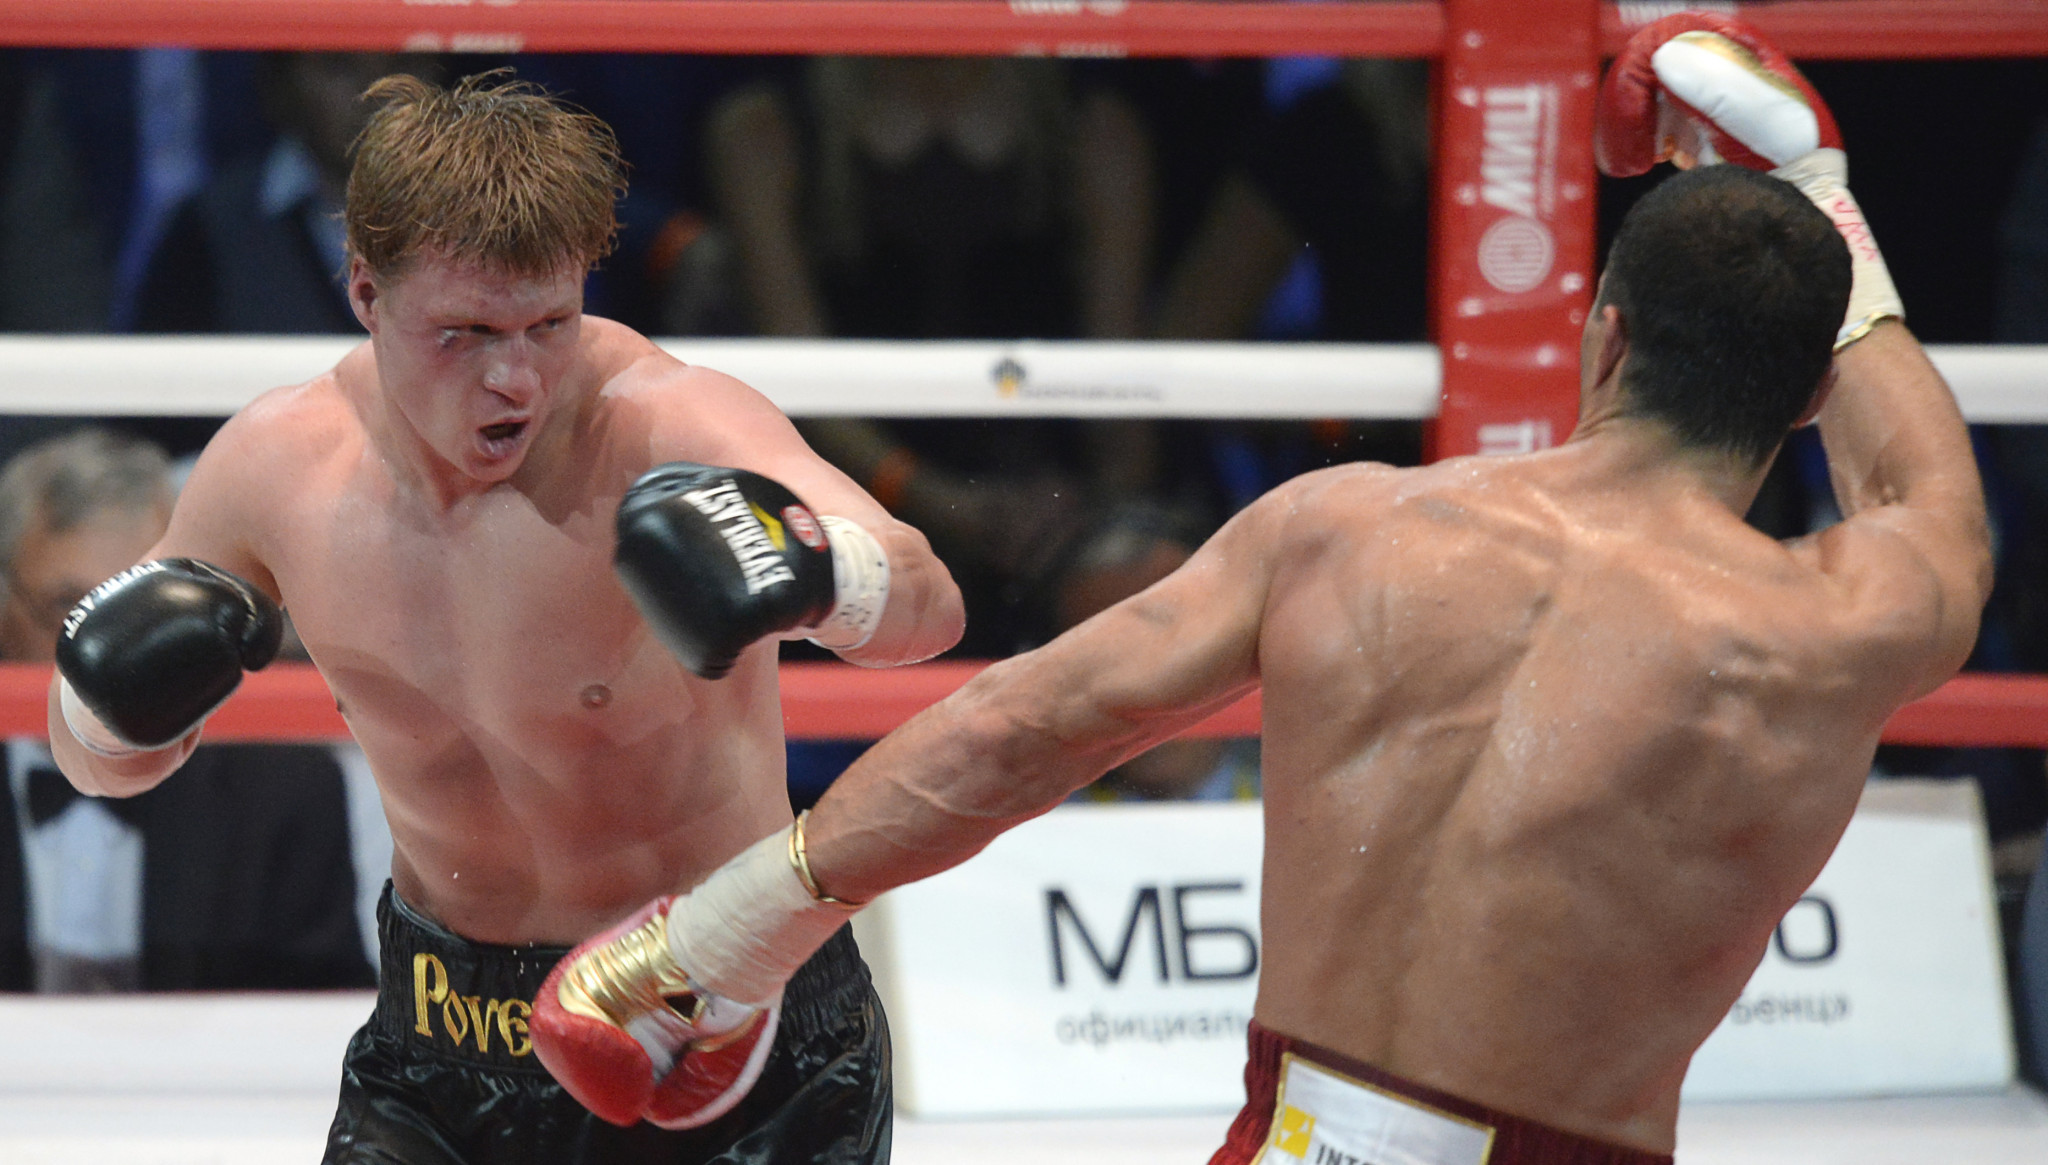 Povetkin doping ban cut to one year but Russian ordered to pay $250,000 fine